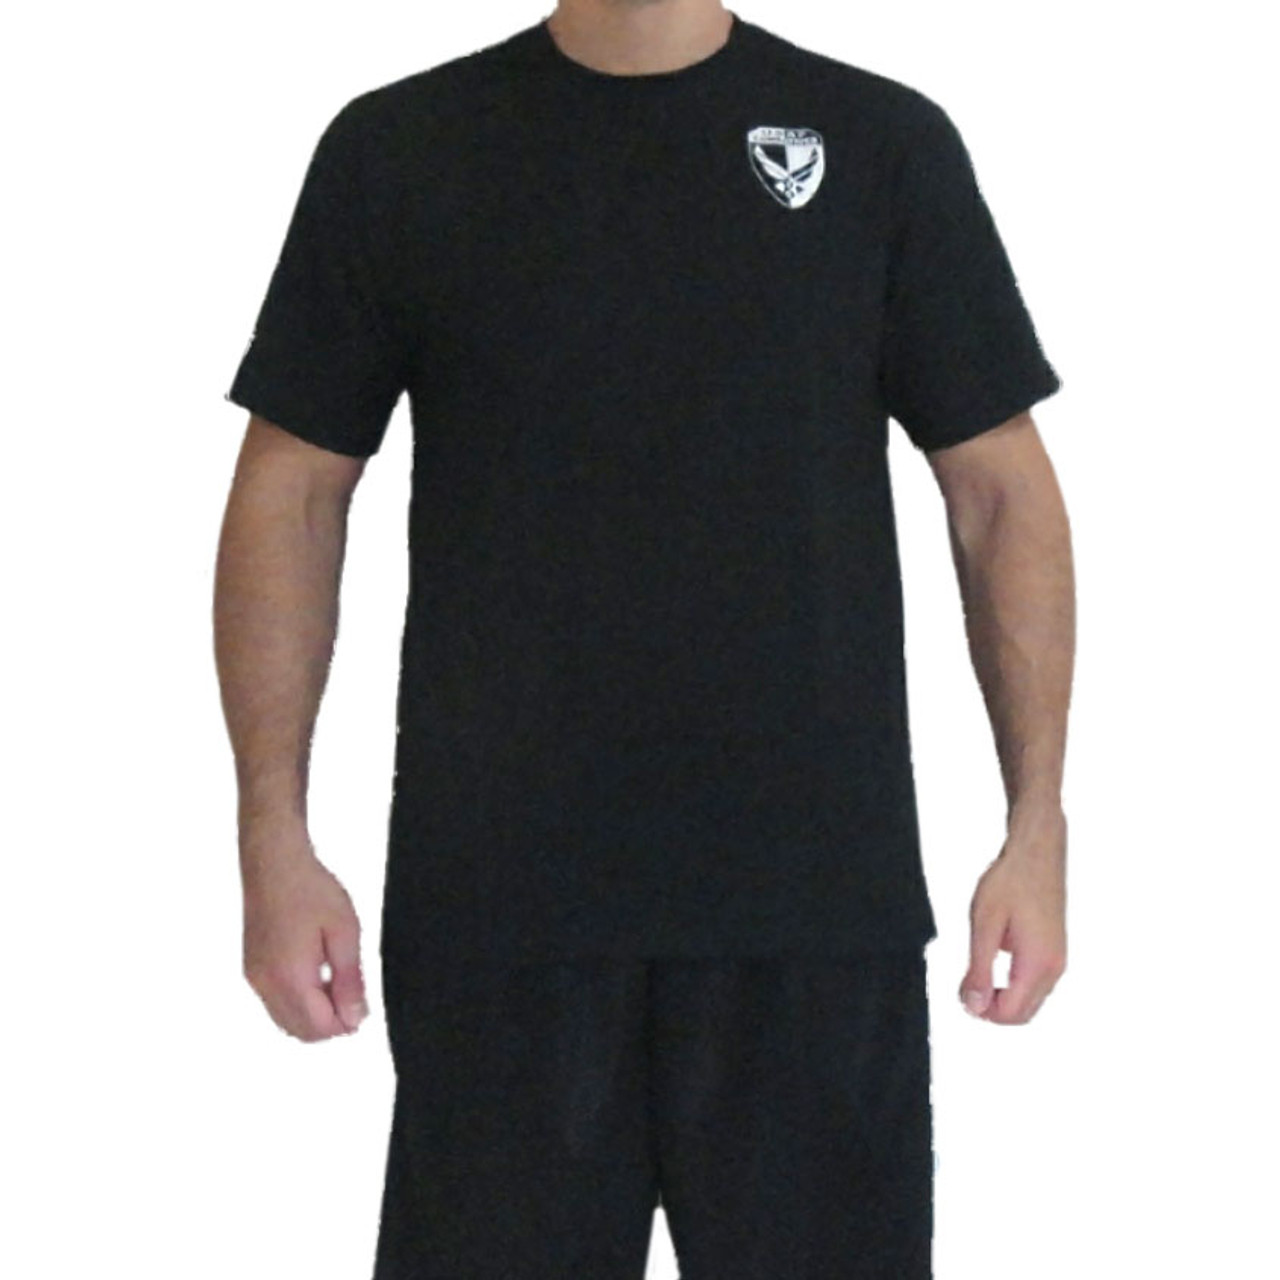 AFCP Instructor T-Shirt White Print on Black - MacpGear A Division ...